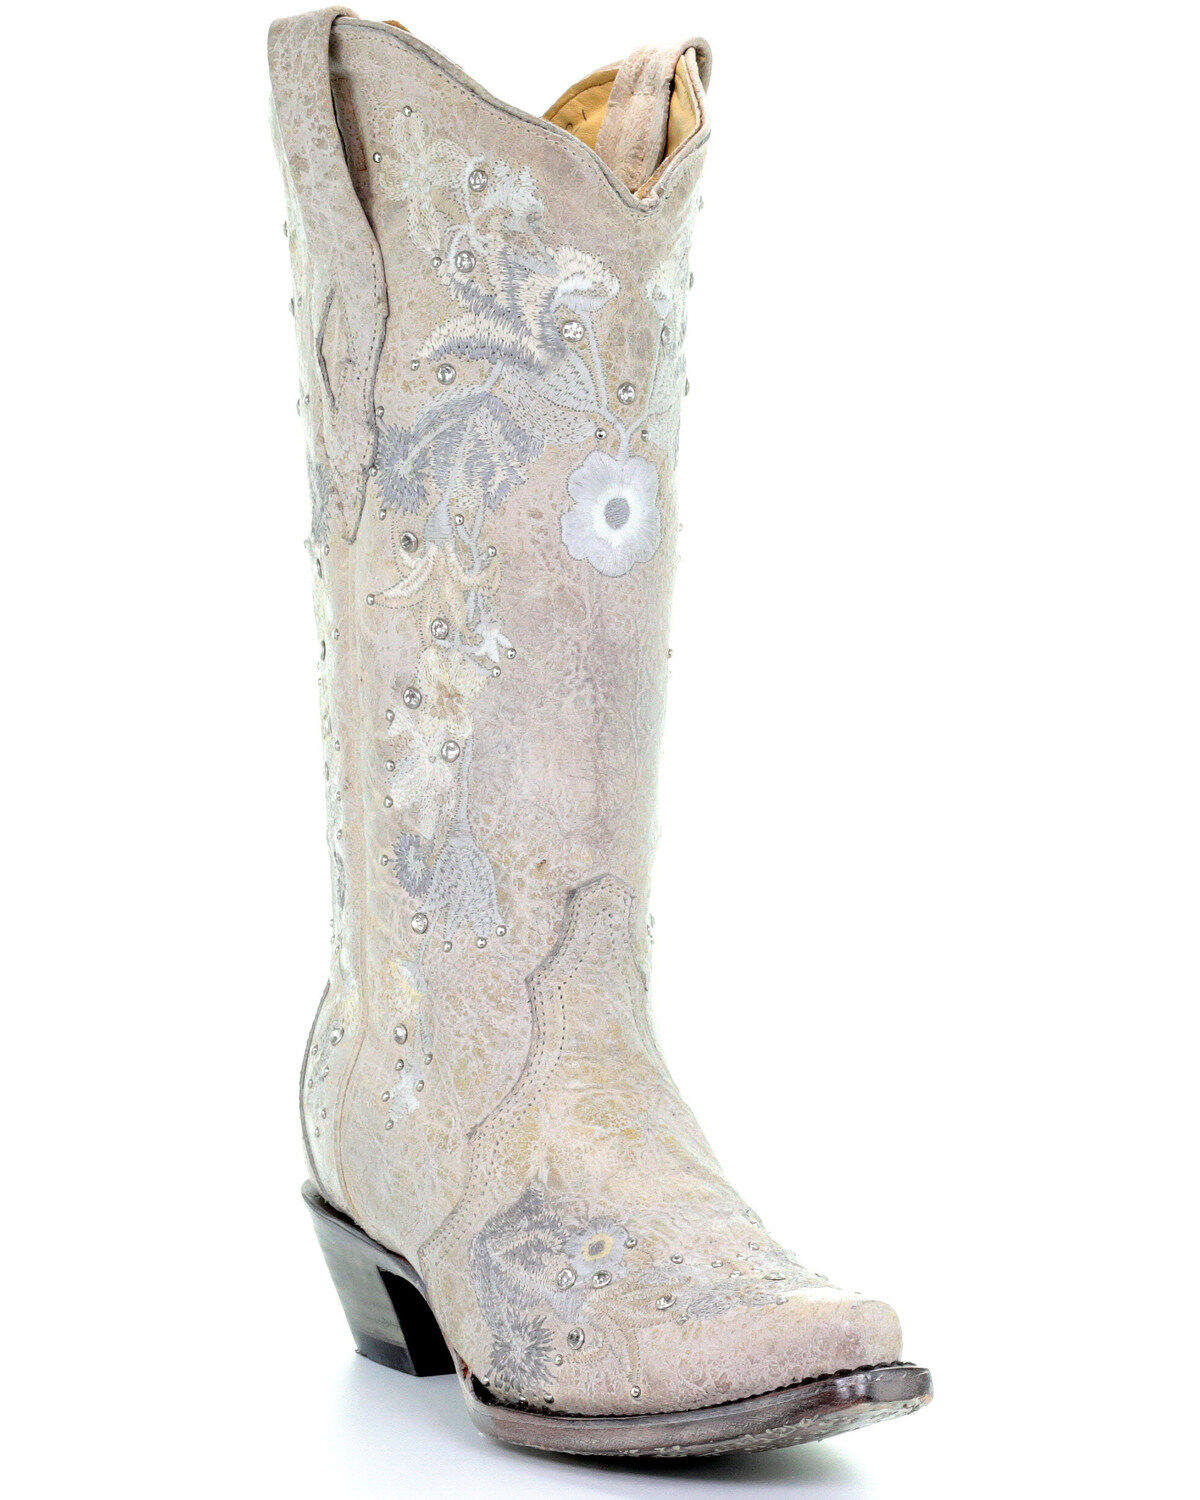 Corral Women's White Floral Embroidered